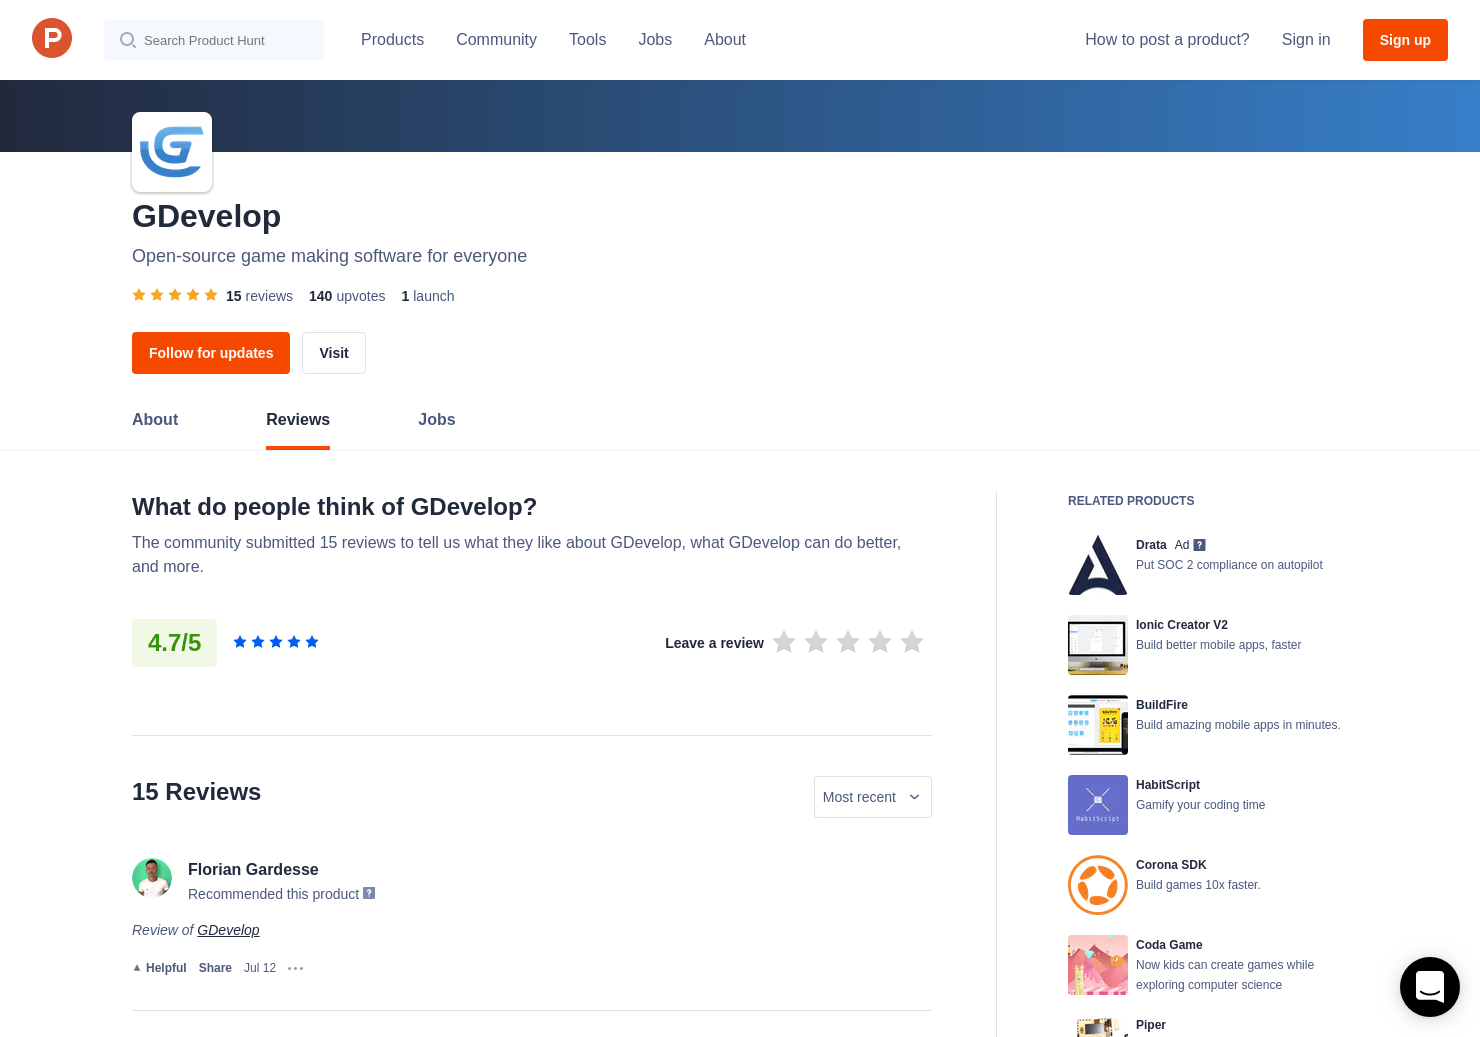 Damien Bommart's review of GDevelop | Product Hunt